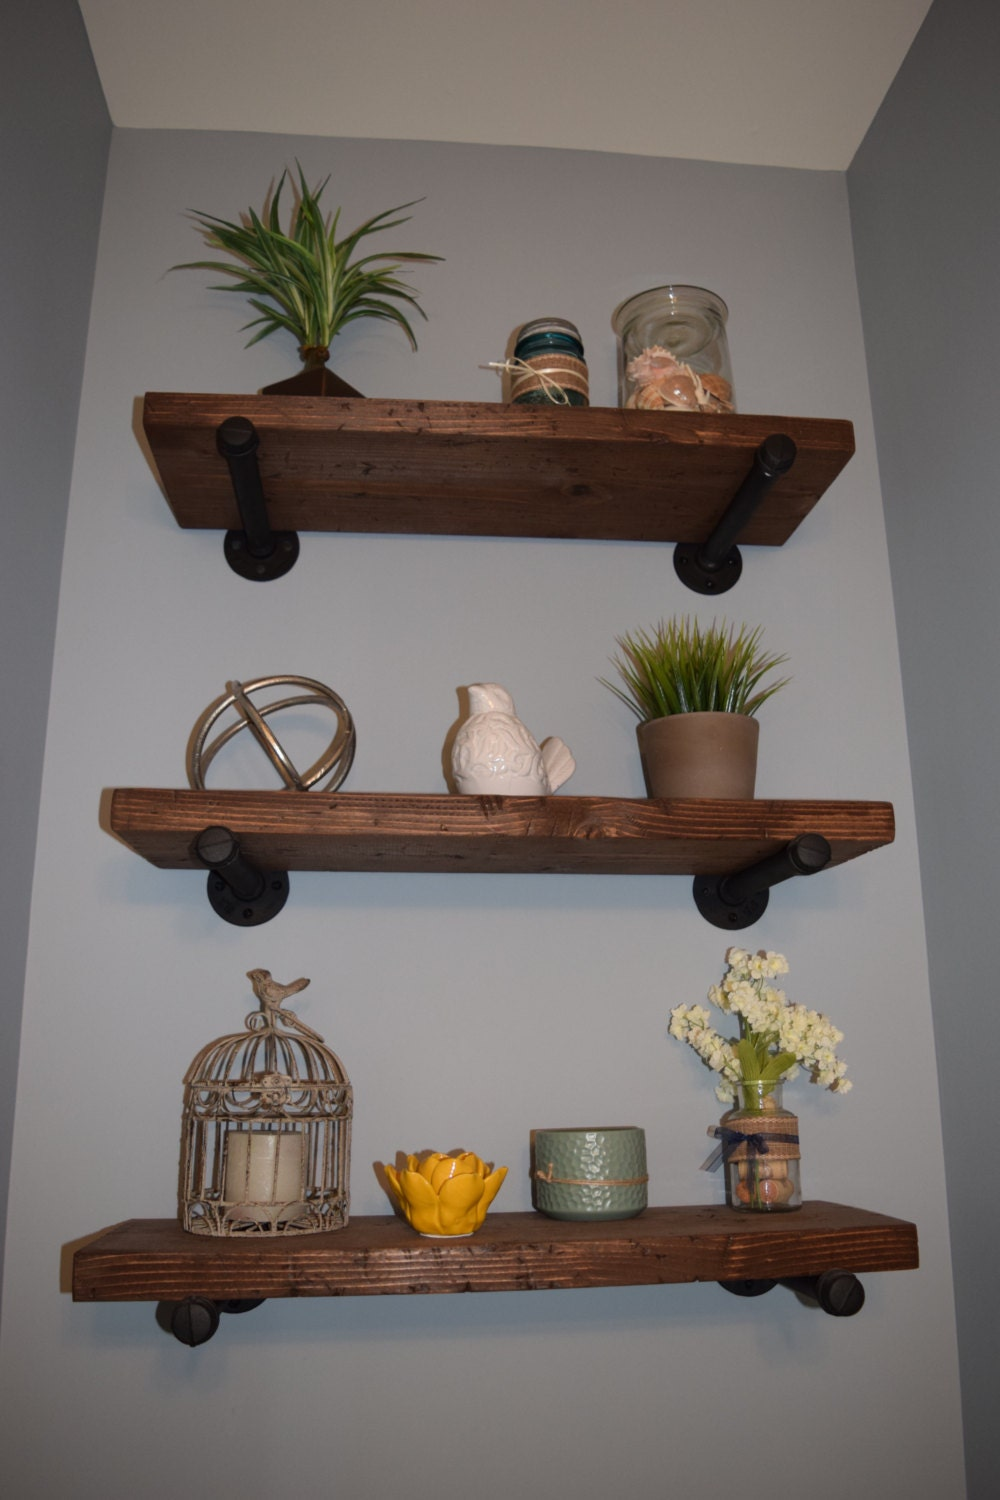 Wooden bathroom shelf